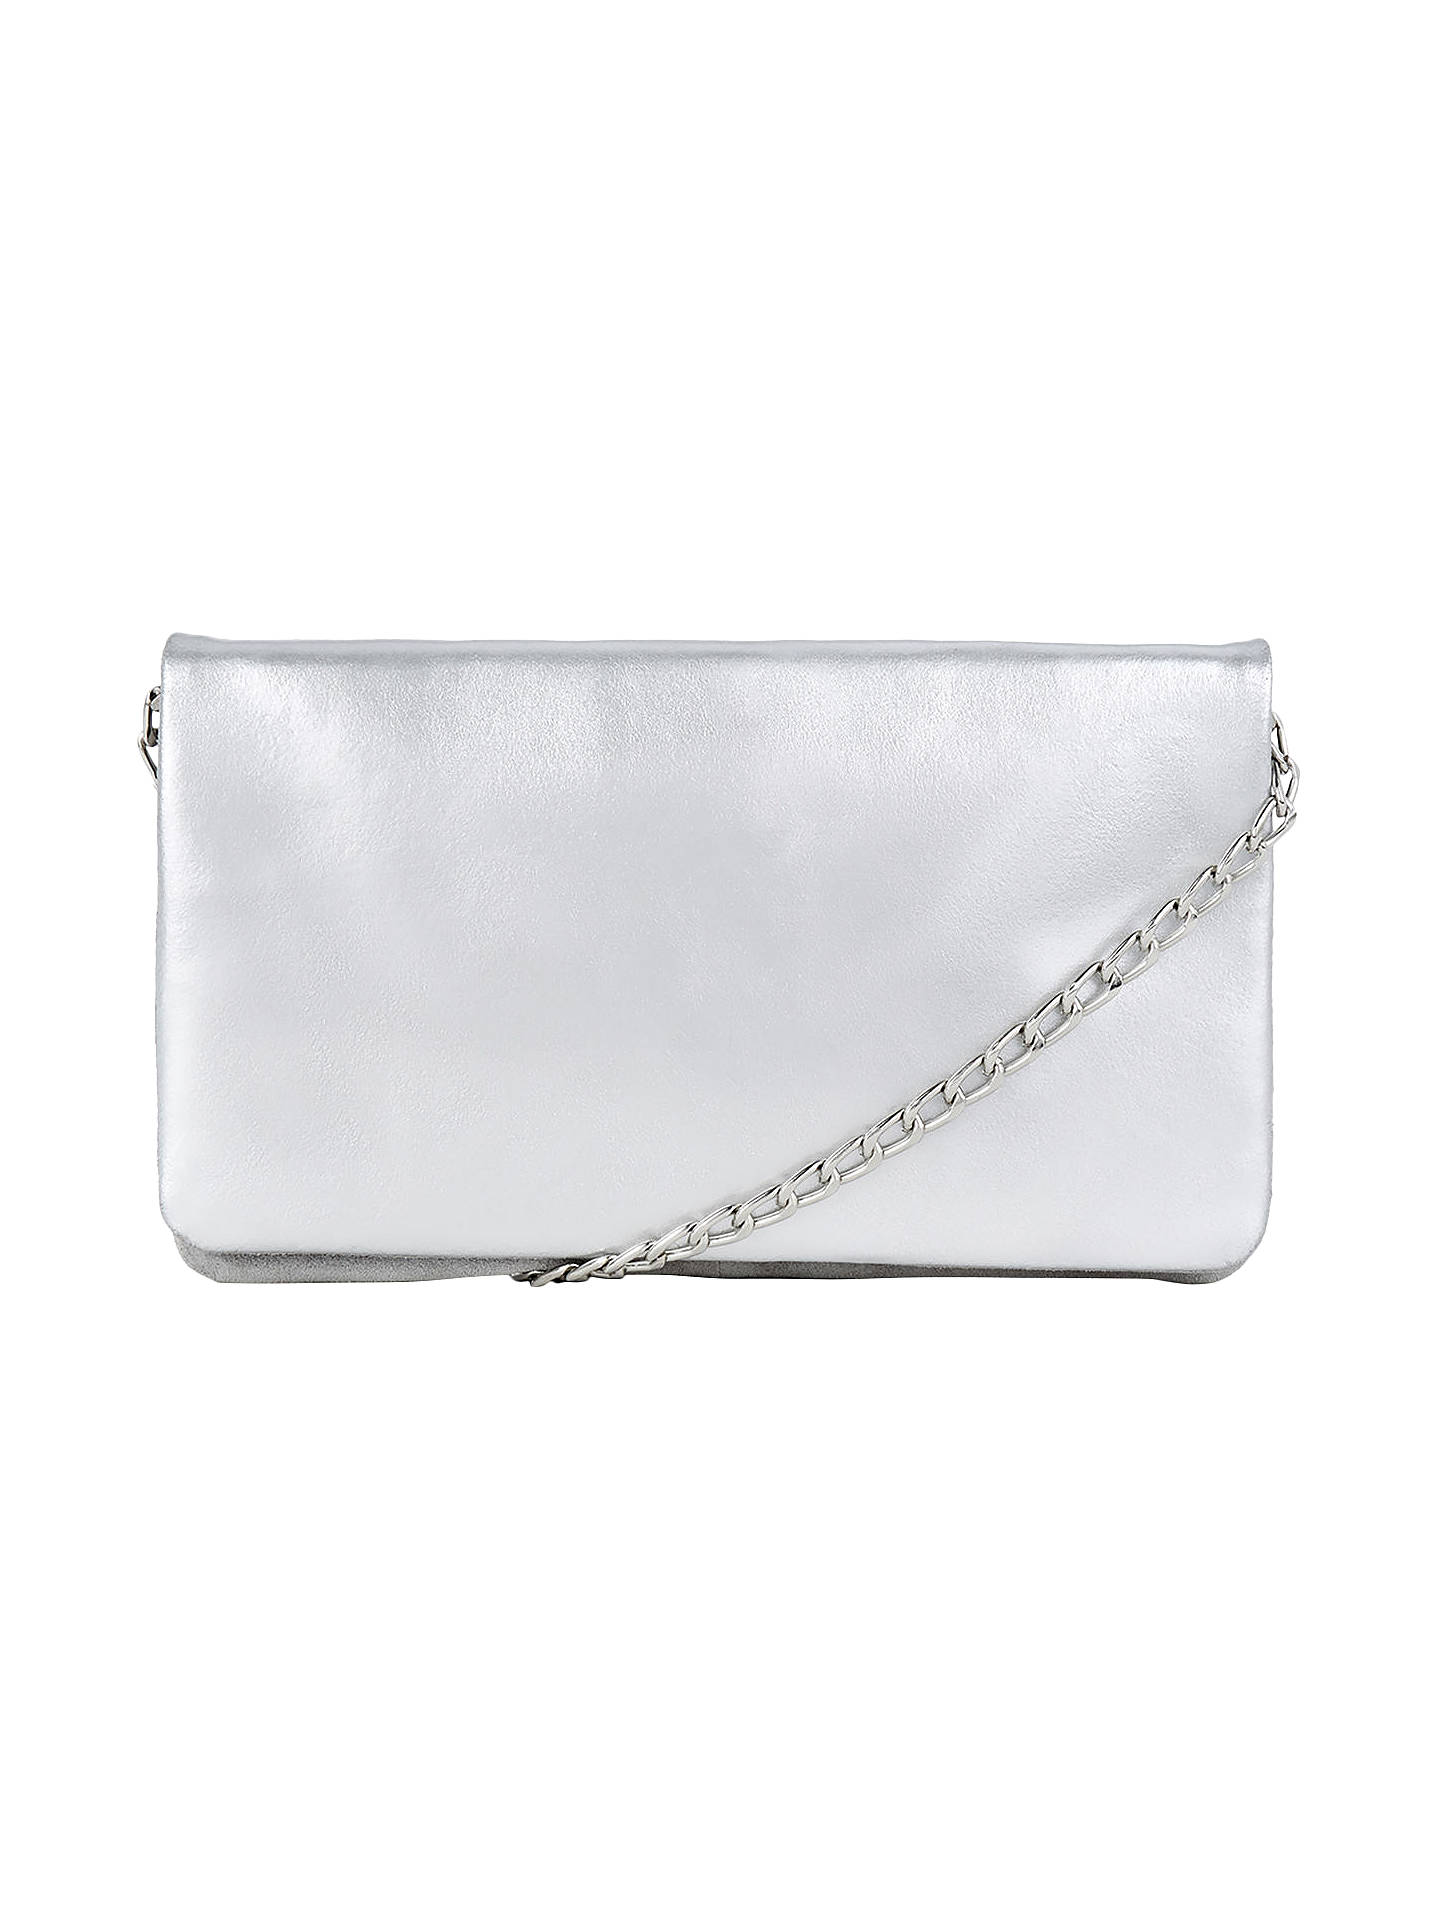 BuyWarehouse Leather Chain Cross Body Bag, Silver Online at johnlewis.com